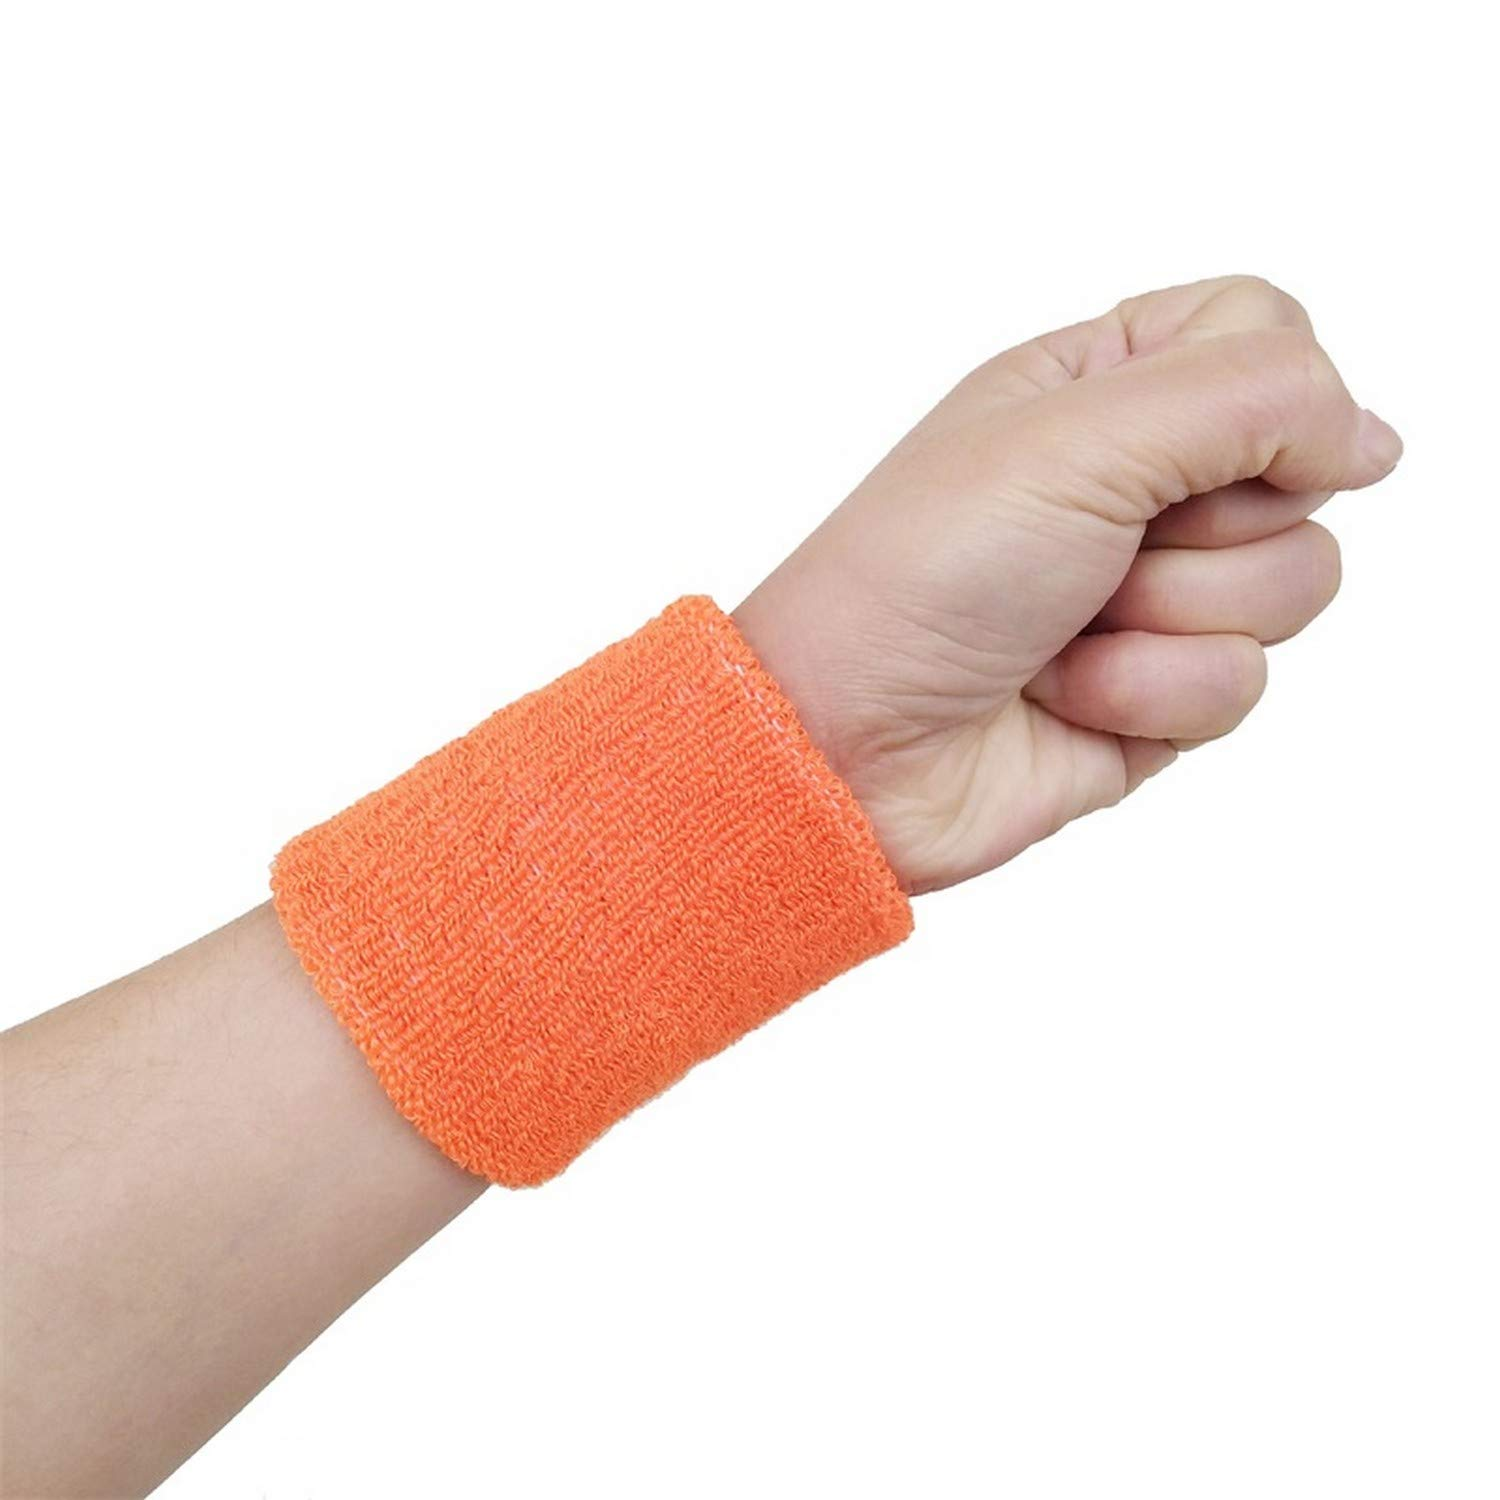 Excessed Wrist Sport Sweatband Hand Band Sweat Wrist Support Brace Wraps Guards for Gym Volleyball Basketball by Excessed